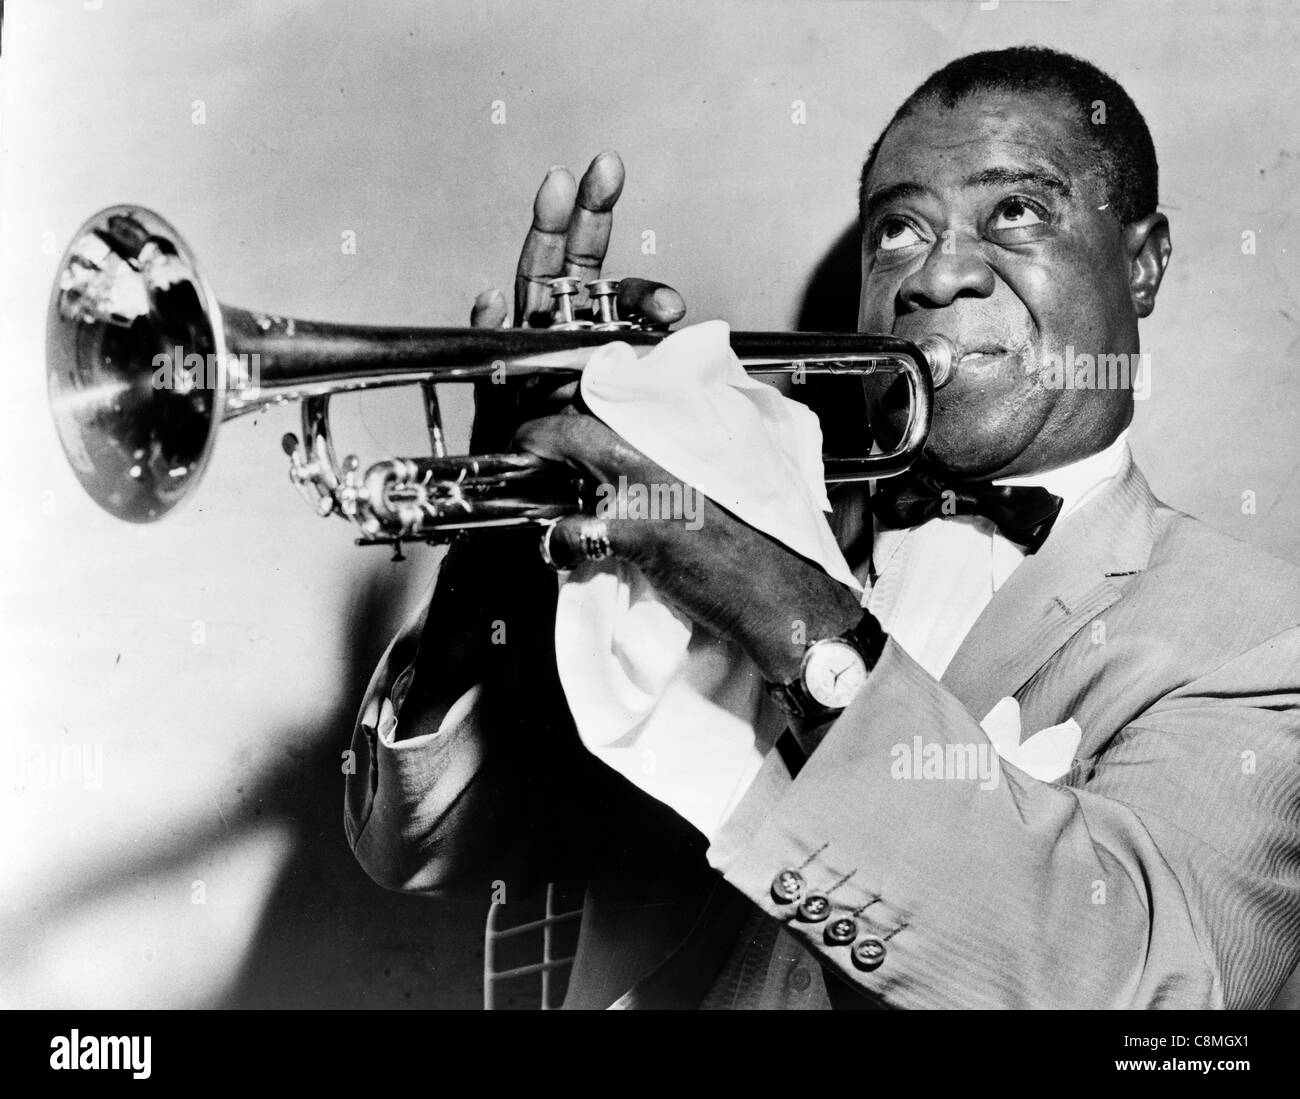 Louis Armstrong playing trumpet, American jazz trumpeter and singer from New Orleans - Stock Image